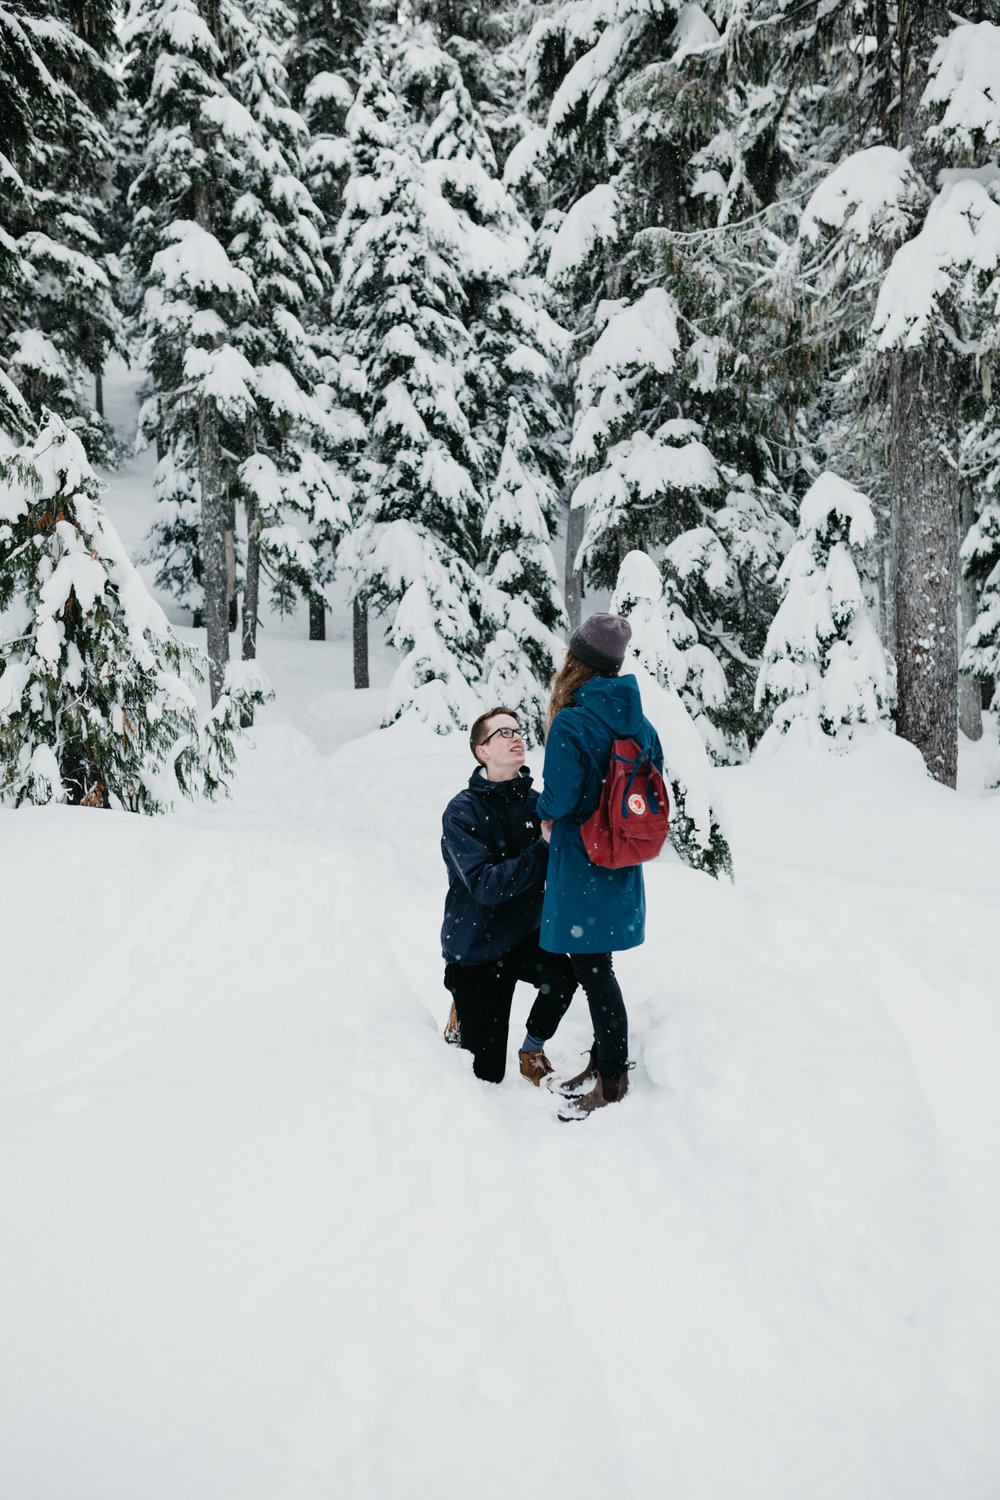 greg+jade-mount-washington-winter-engagement022.JPG